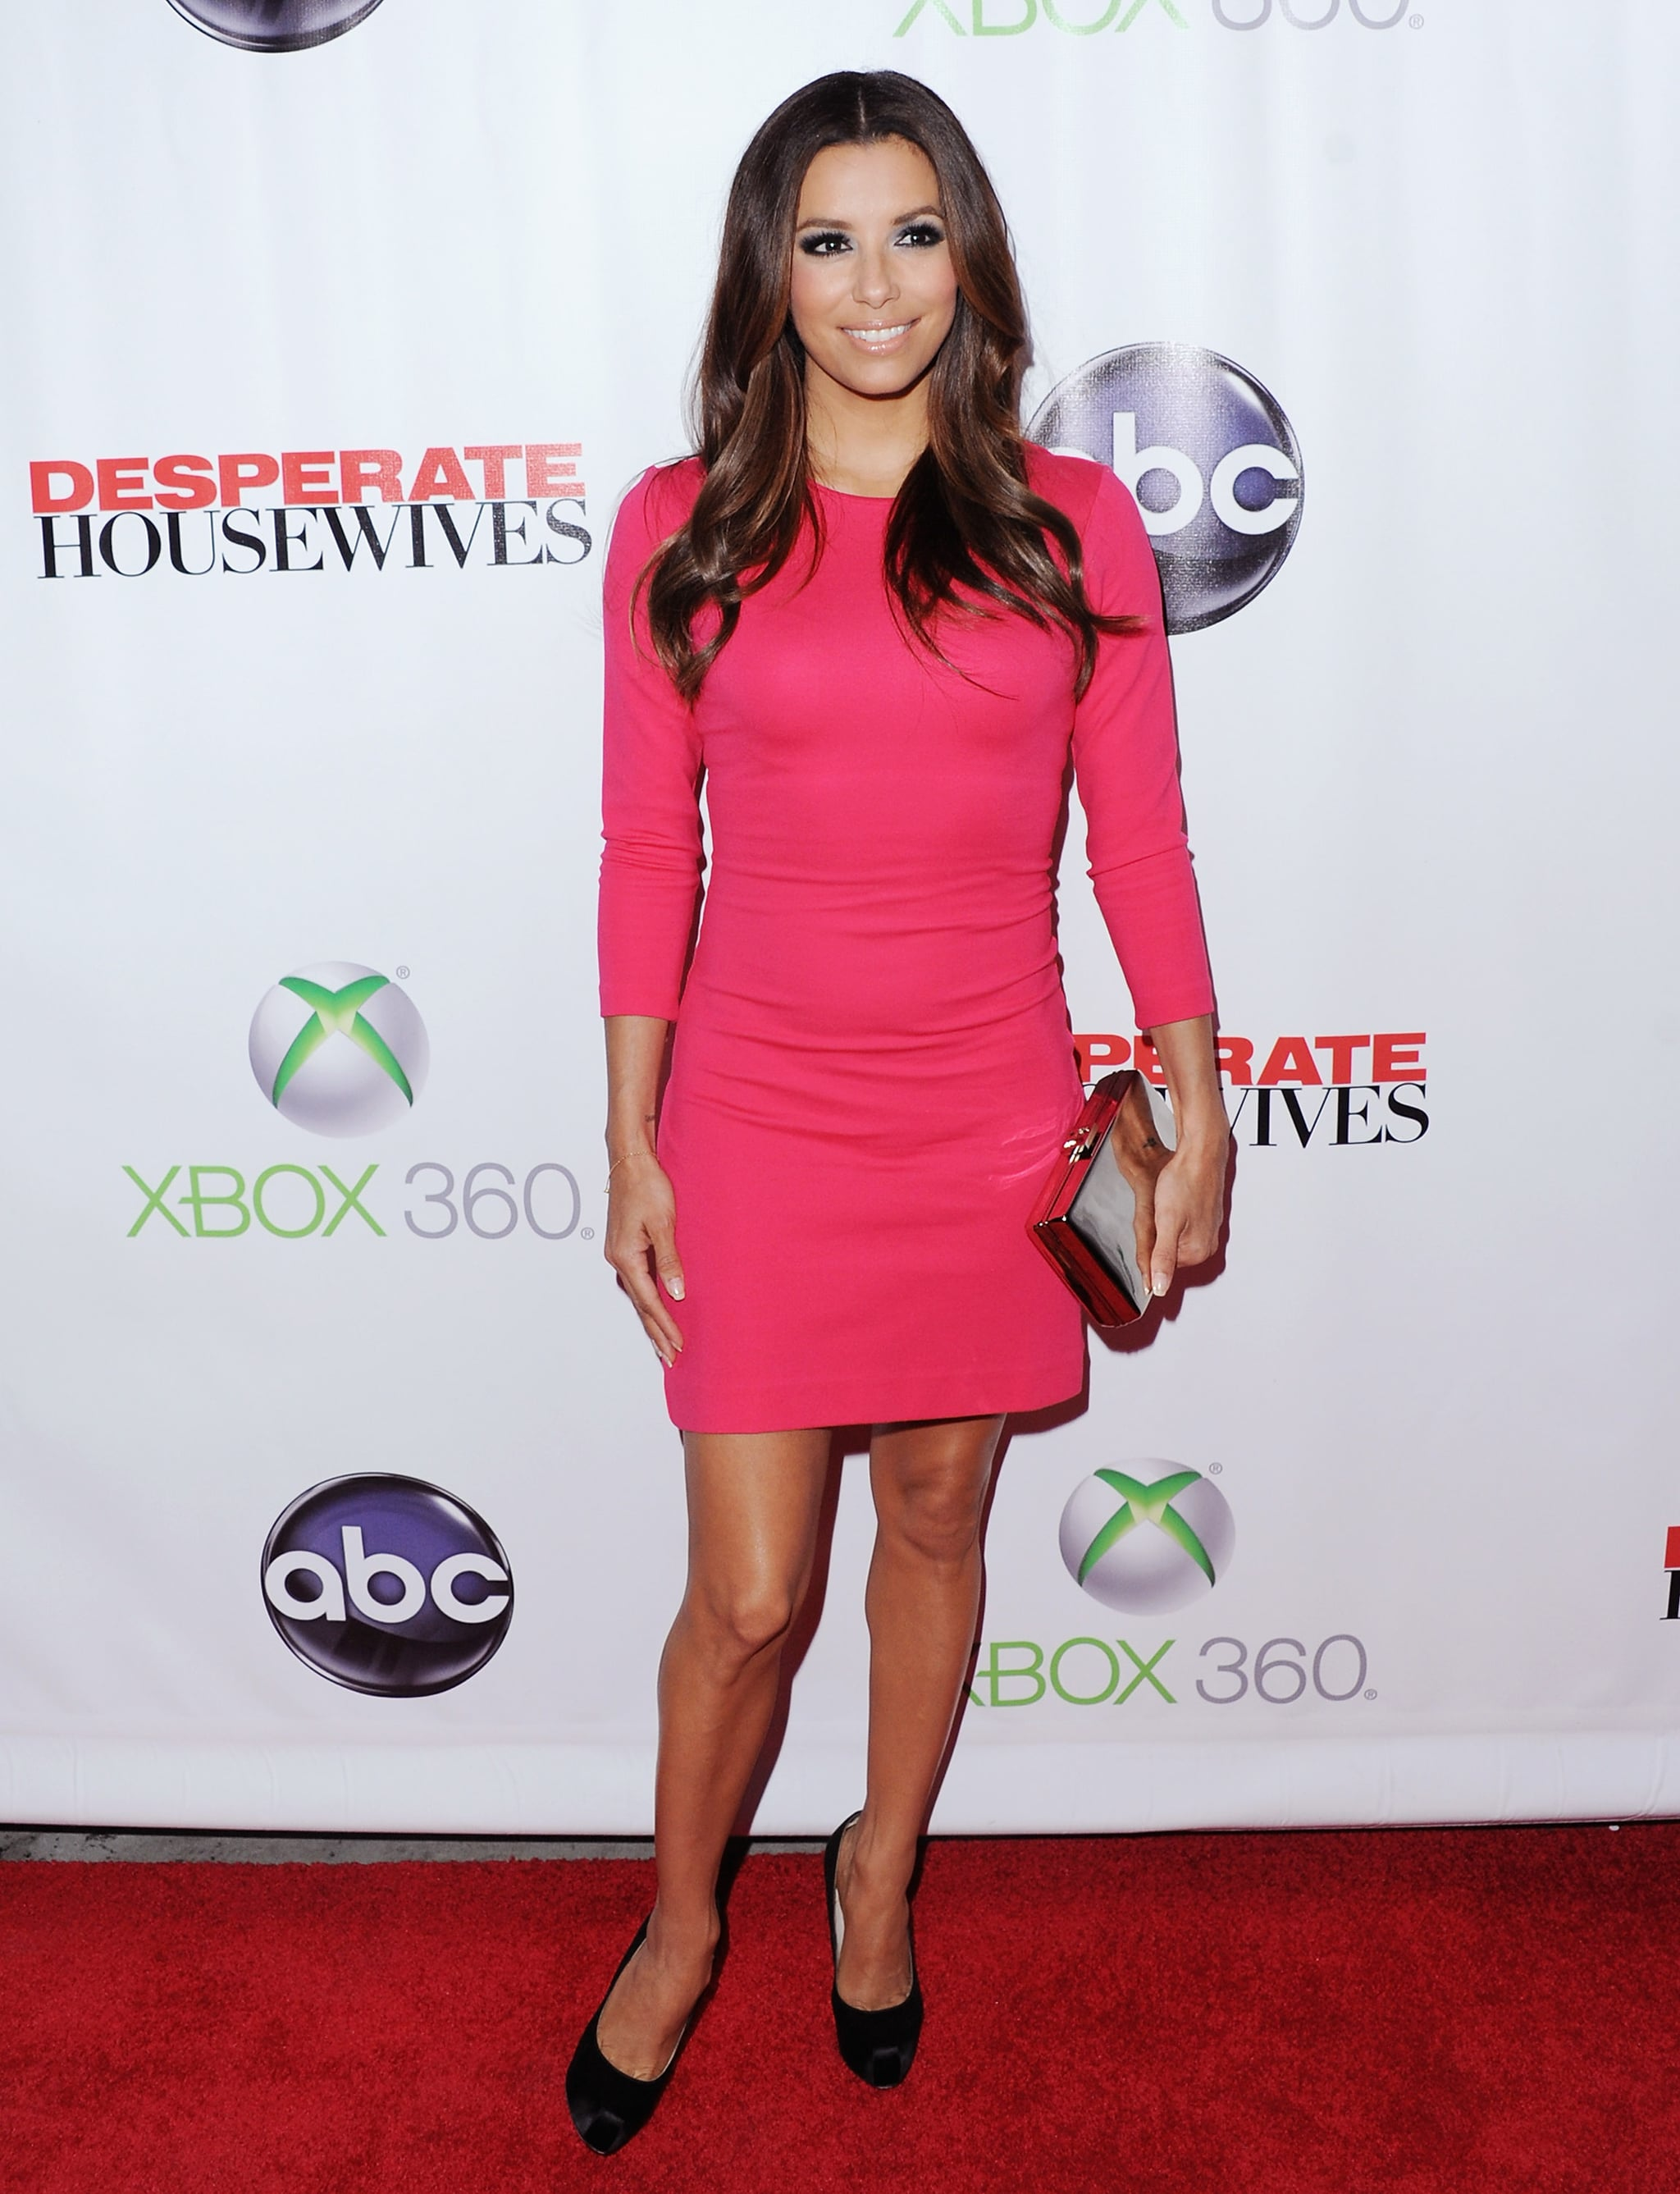 The Desperate Housewives star chose a hot pink Ann Taylor ponte sheath for the series 2012 finale party in Hollywood.